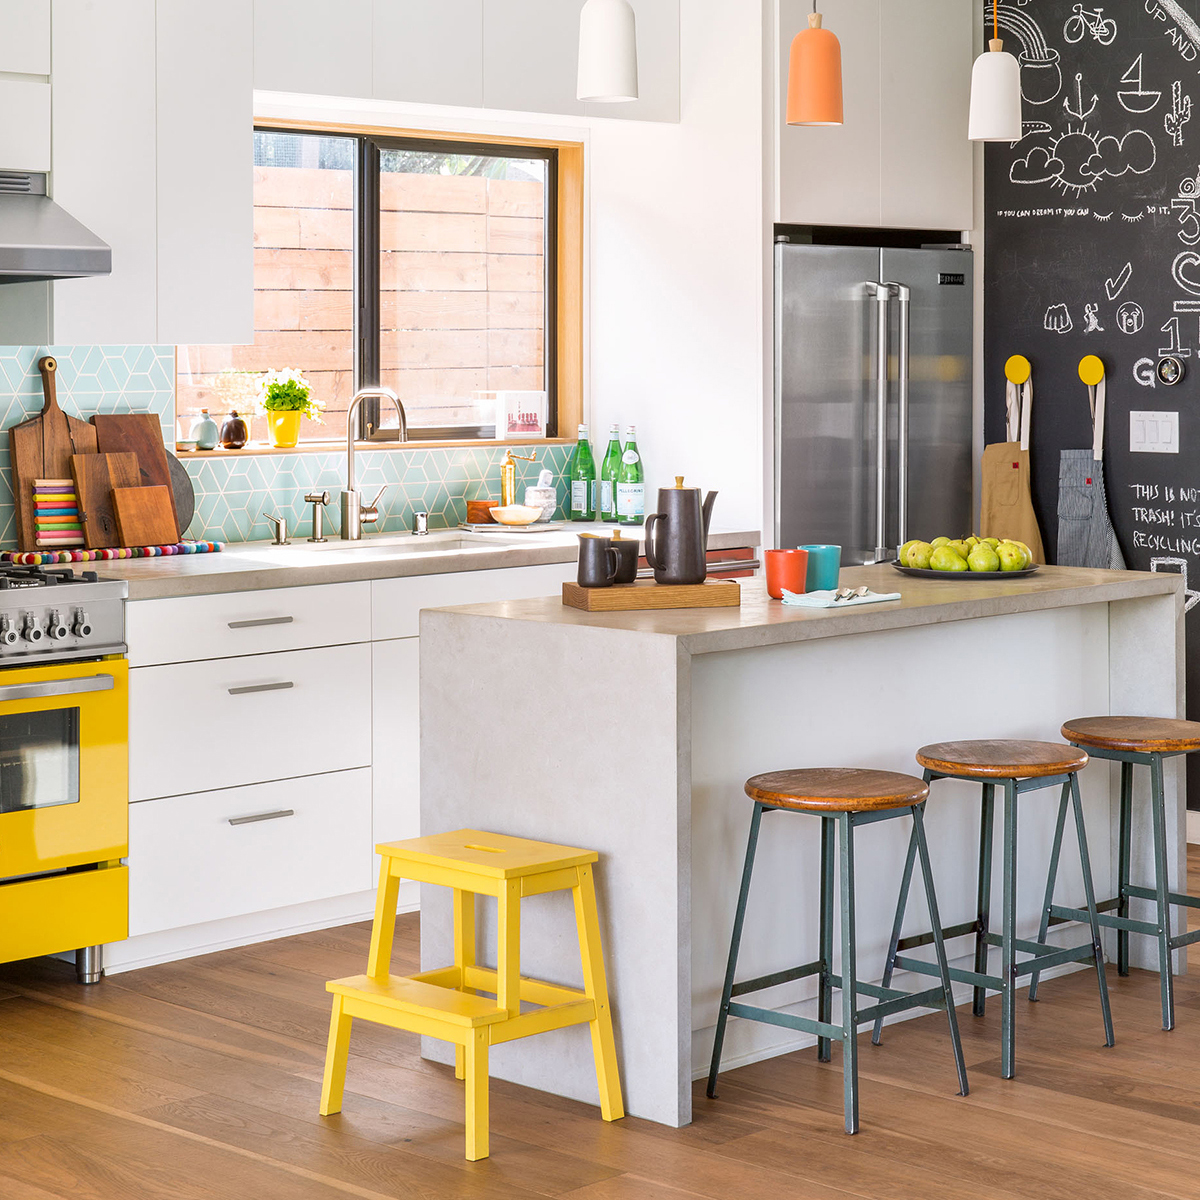 kitchen yellow accents square